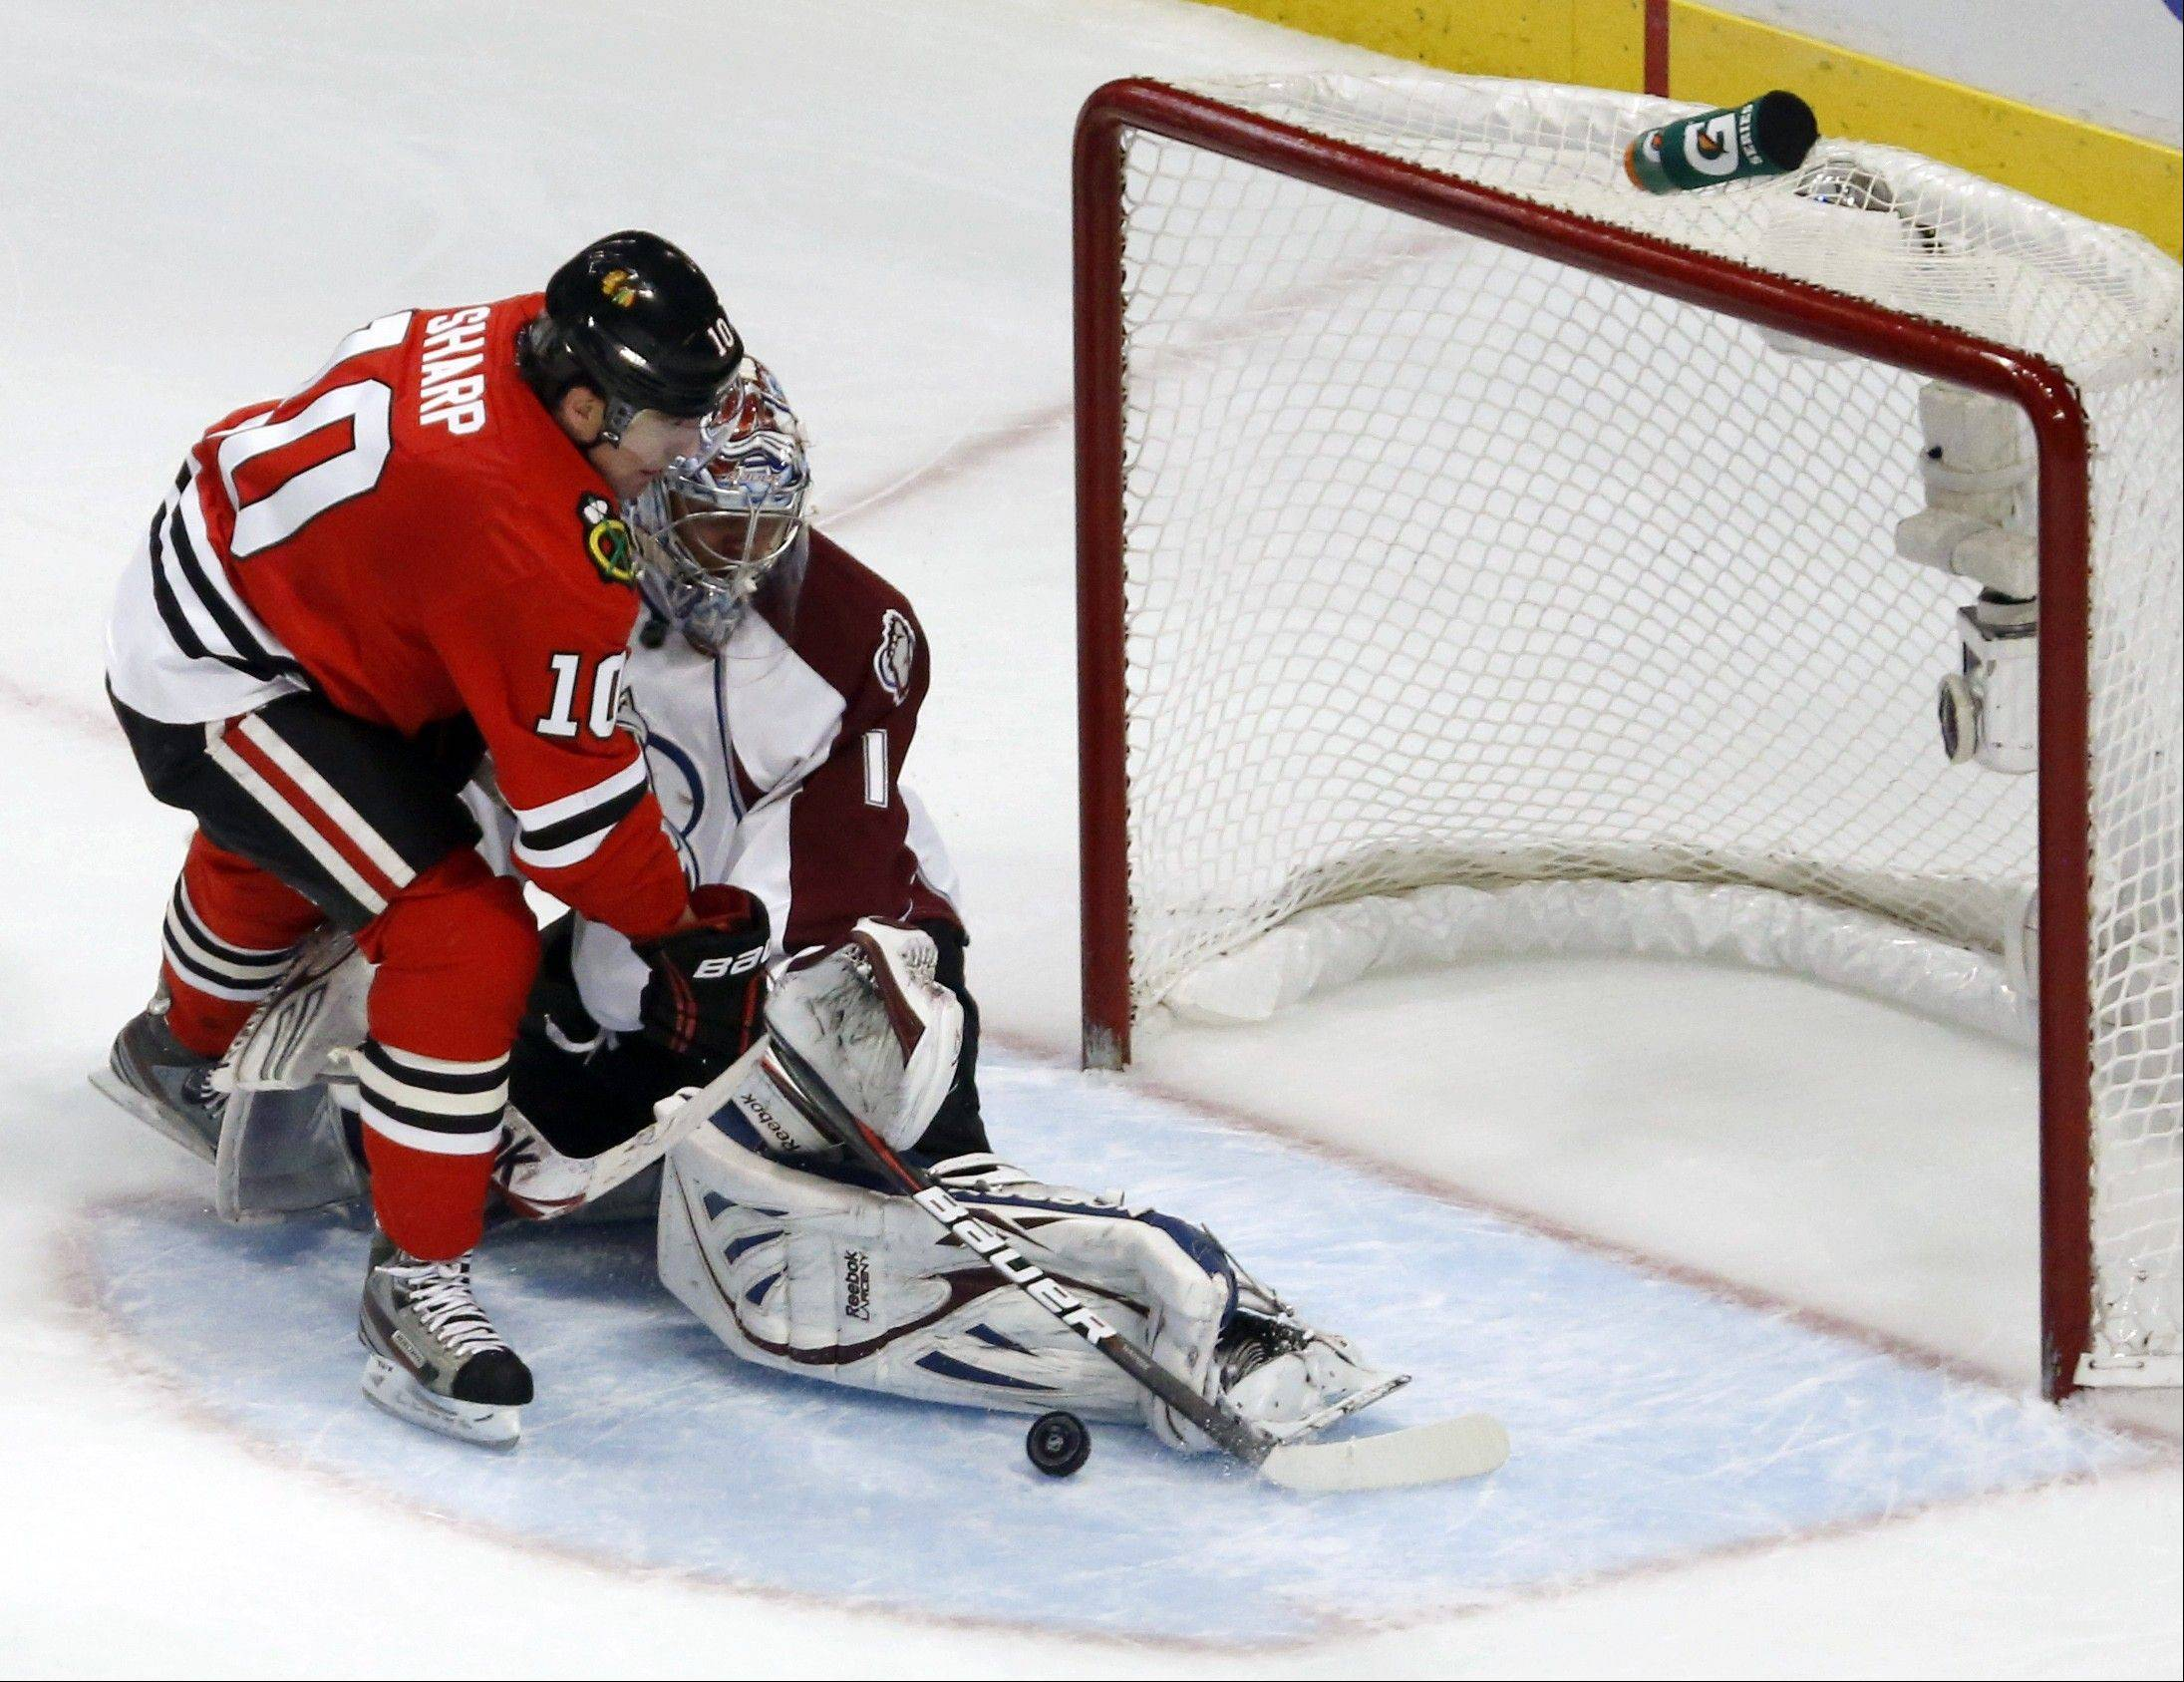 Colorado Avalanche goalie Semyon Varlamov (1), of Russia, makes a save on a shot by Chicago Blackhawks center Patrick Sharp during the second period of an NHL hockey game, Wednesday, March 6, 2013, in Chicago.